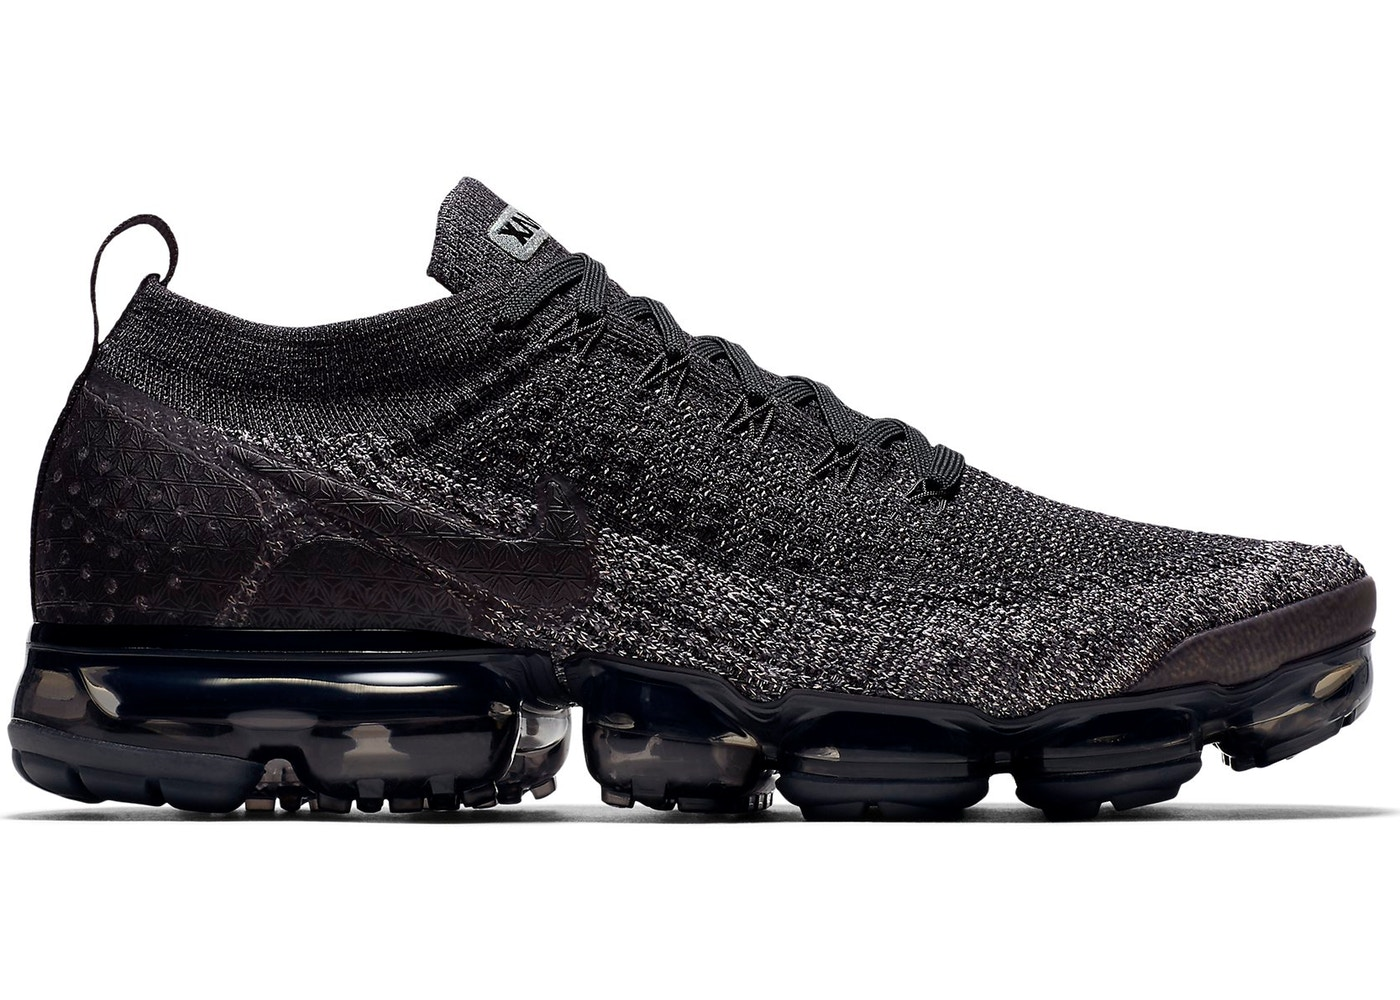 official photos a7d0d 37c9c Air VaporMax 2 Black Dark Grey